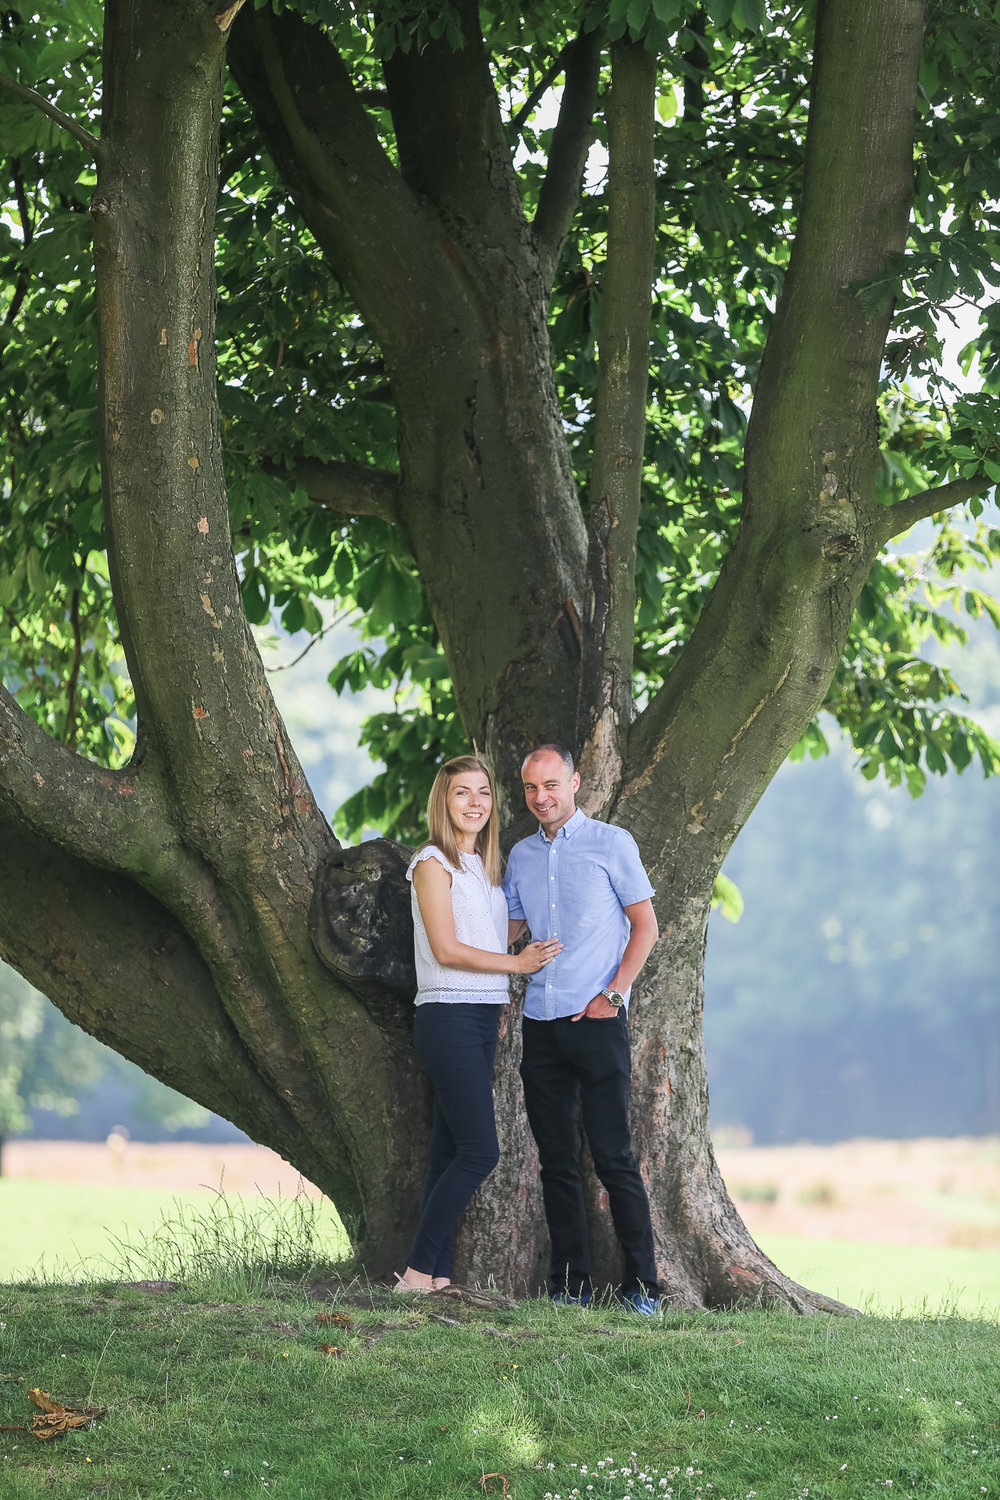 0020-Claire & Tony - engagement-Heaton Moor Park-Manchester-photo.jpg